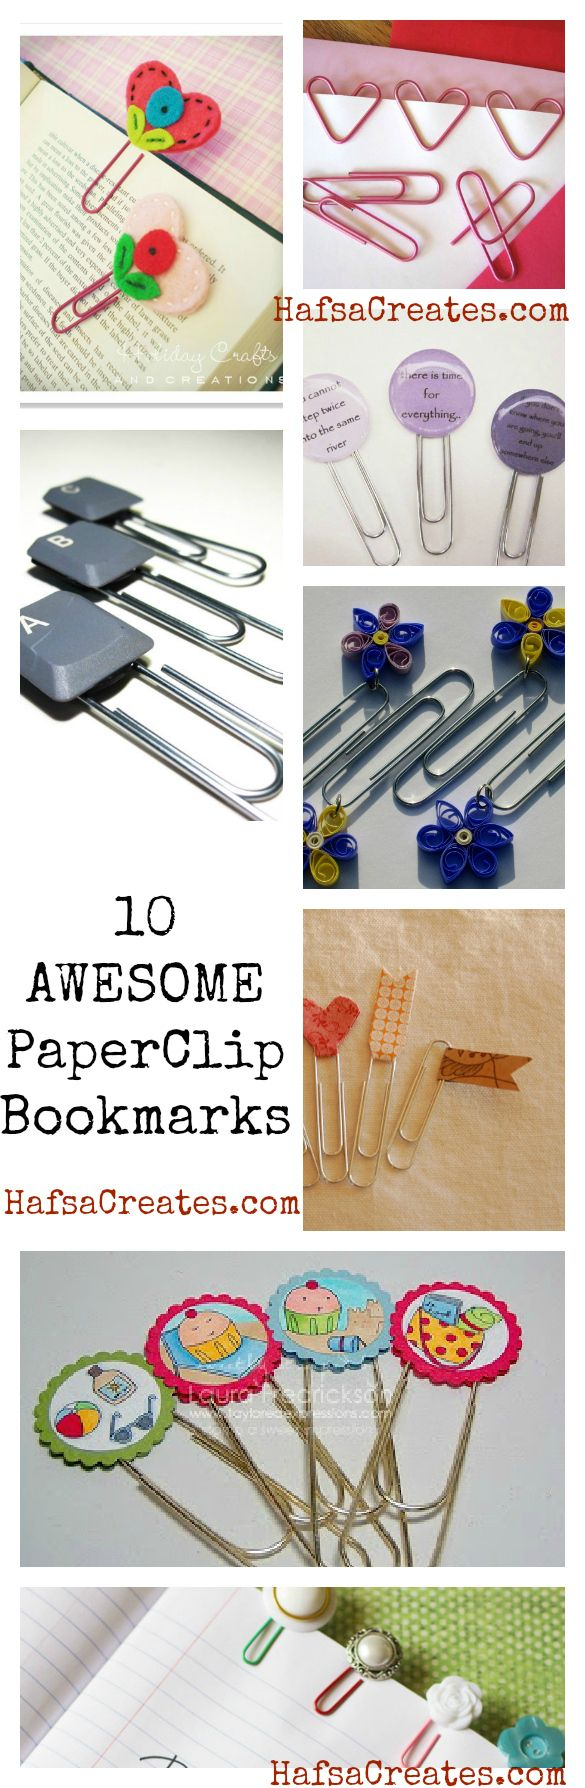 Being a bookworm myself, I have a craze for bookmarks (and I made some  past summer!) Here's a round out of my favourite ones. Click on the image for detailed tutorials …